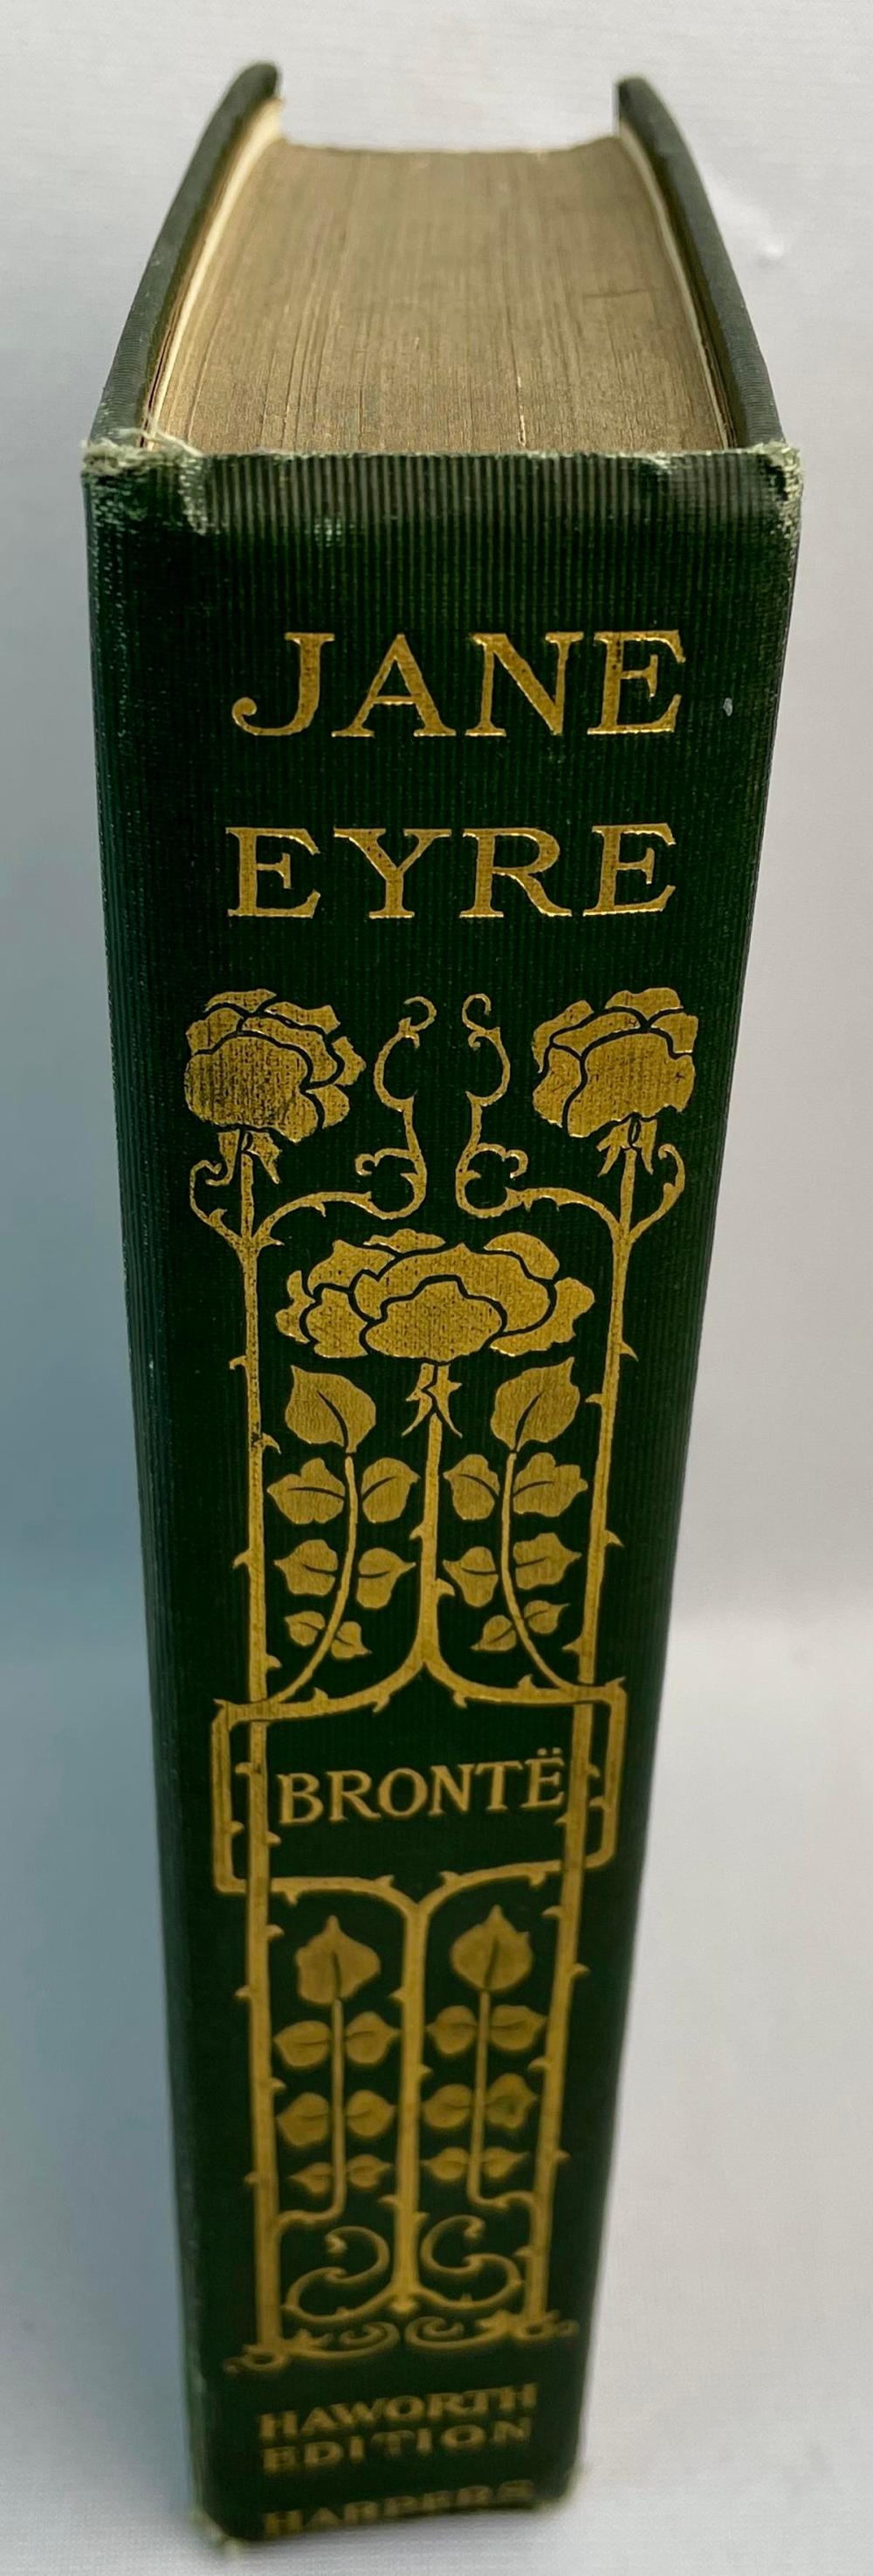 1899 Jane Eyre by Charlotte Bronte (Currer Bell) ILLUSTRATED Haworth Edition